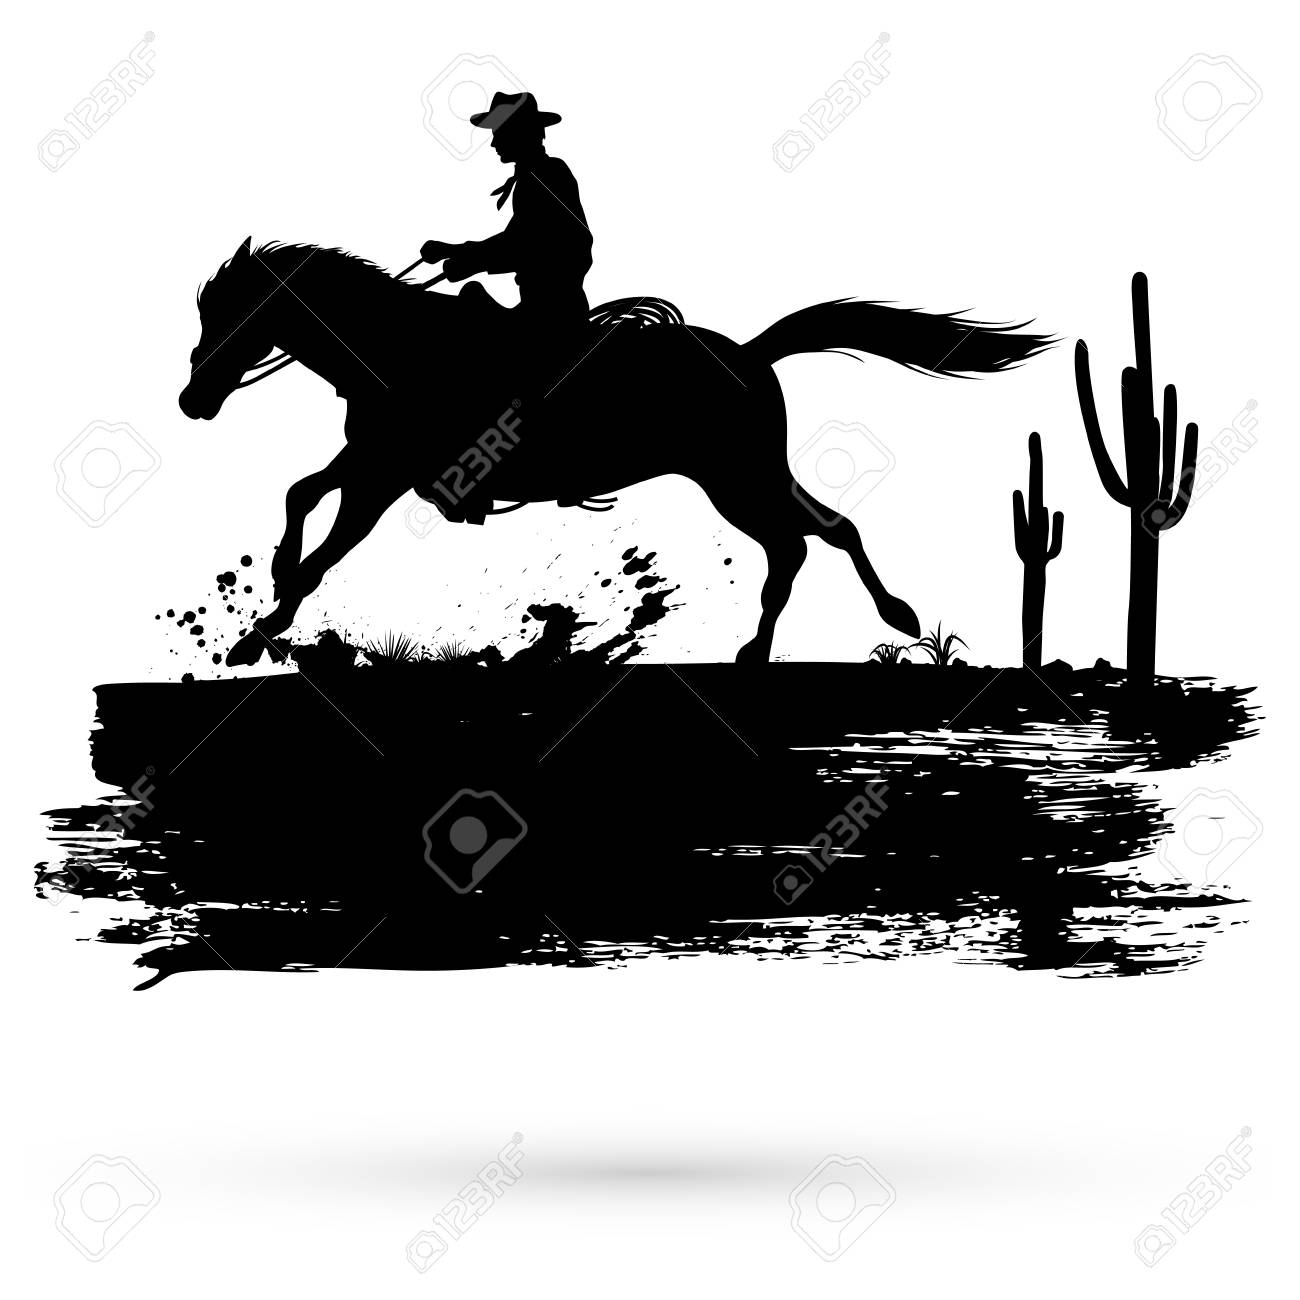 Grunge Banner Silhouette Of A Cowboy Riding Horse Vector Royalty Free Cliparts Vectors And Stock Illustration Image 92925747